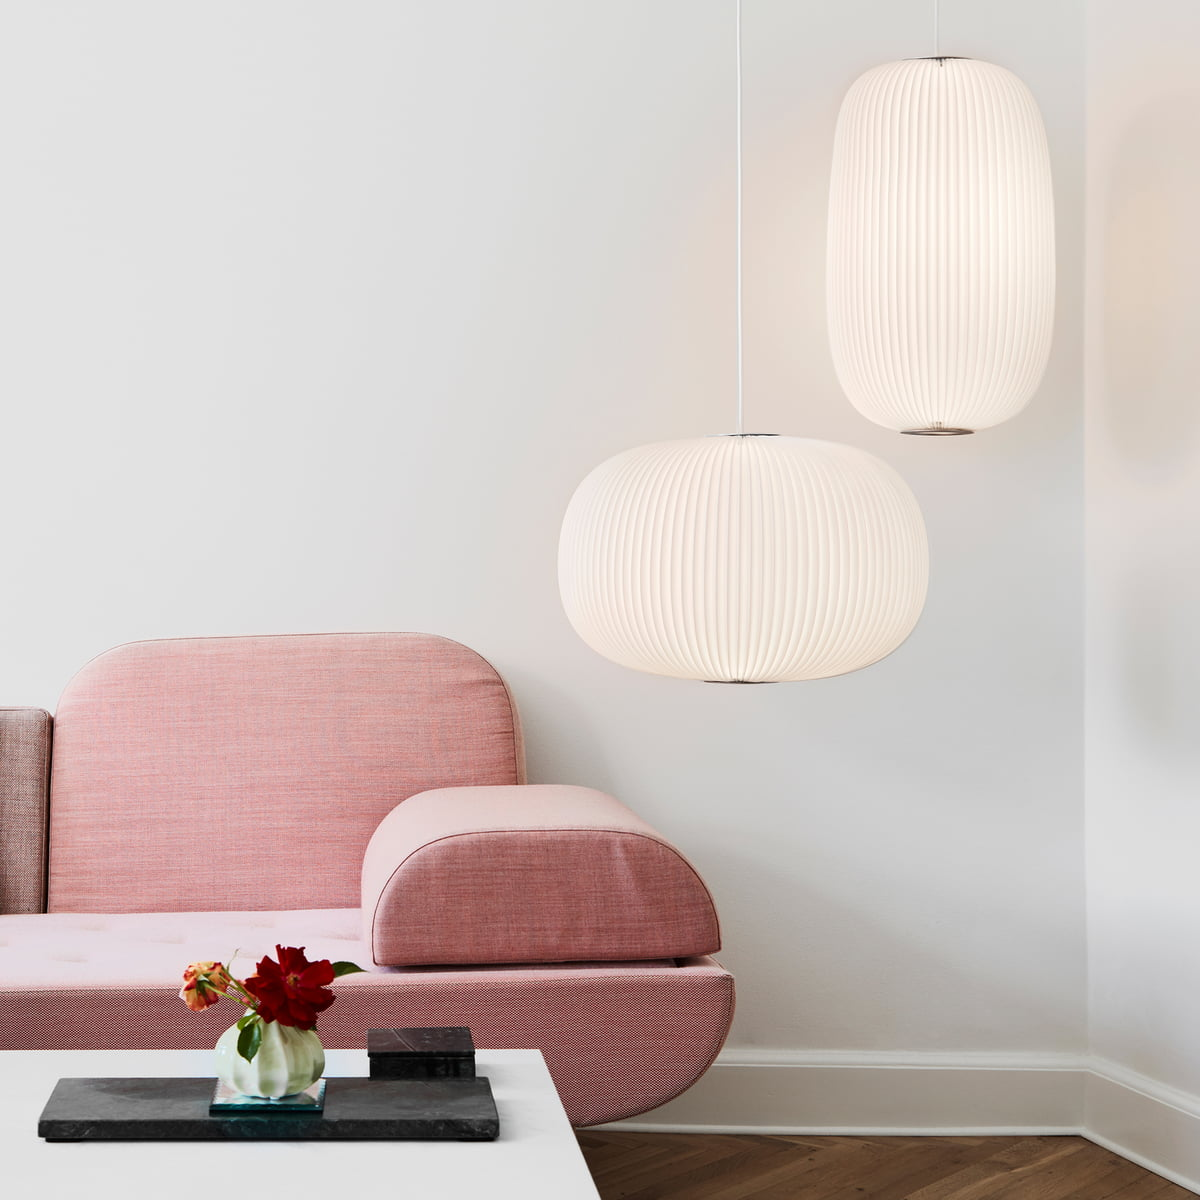 Lamella Pendant Lamp by Le Klint Connox